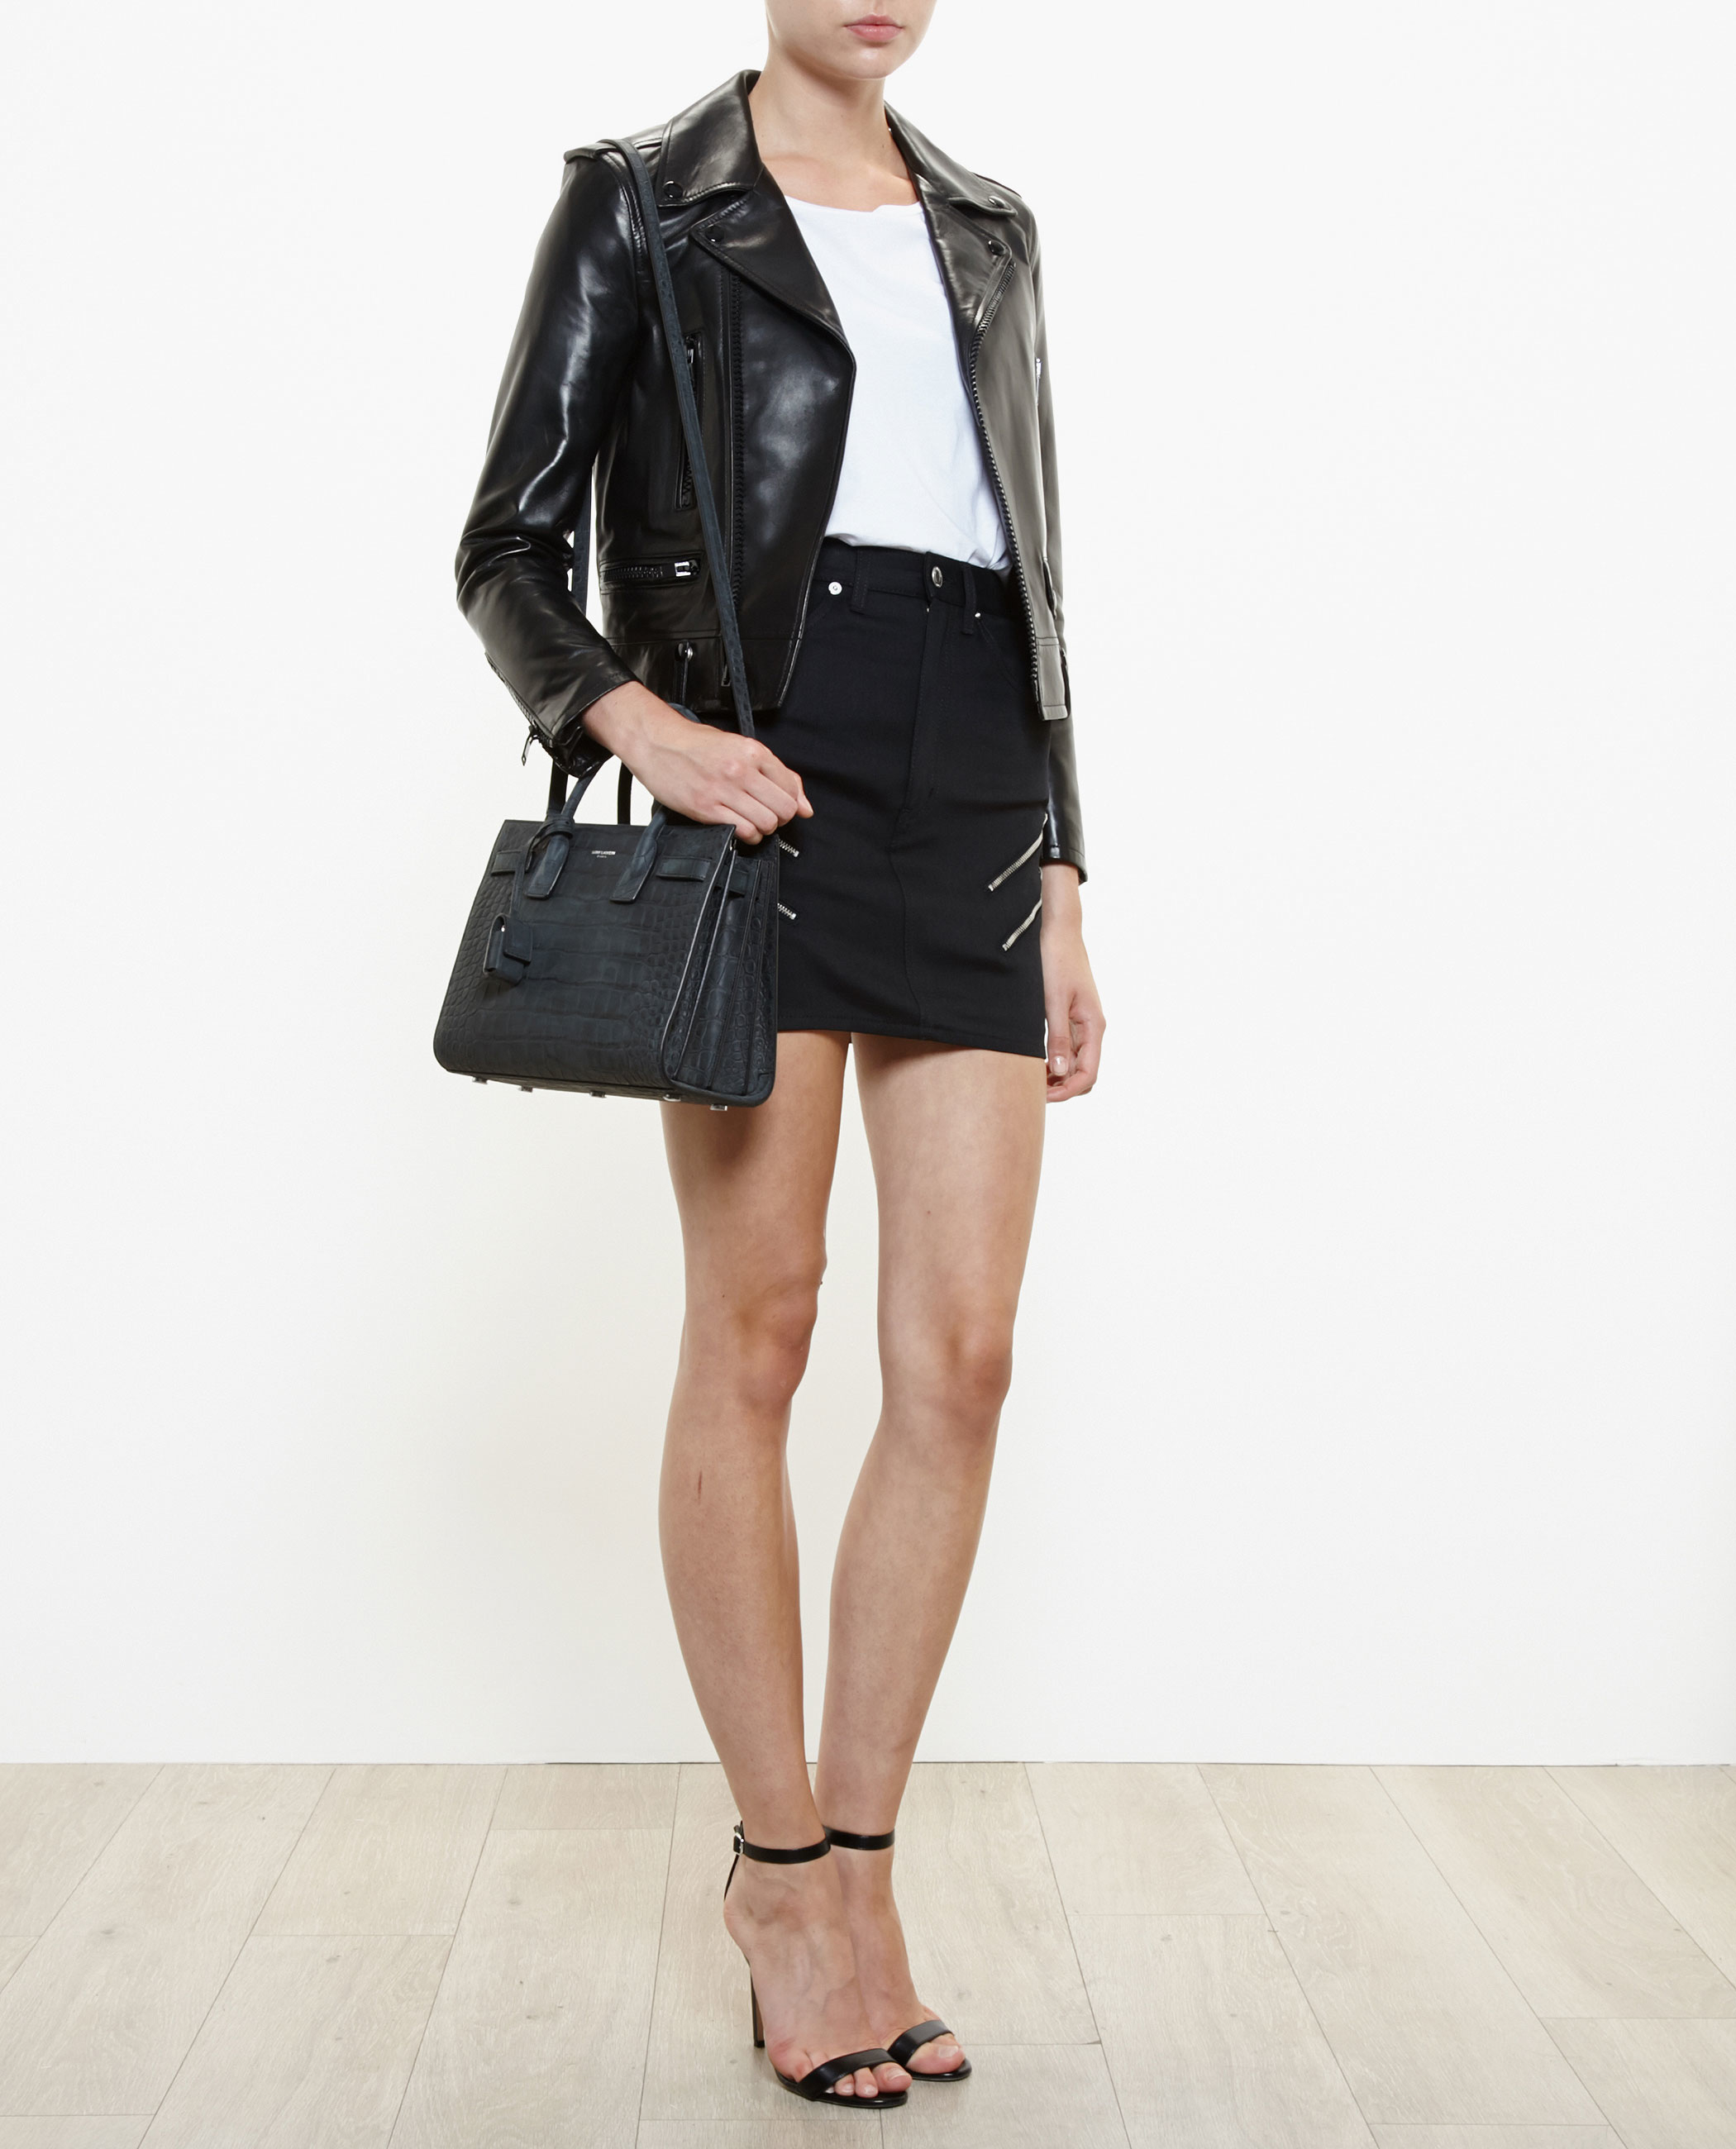 replica ysl handbags - classic baby sac de jour bag in black crocodile embossed leather